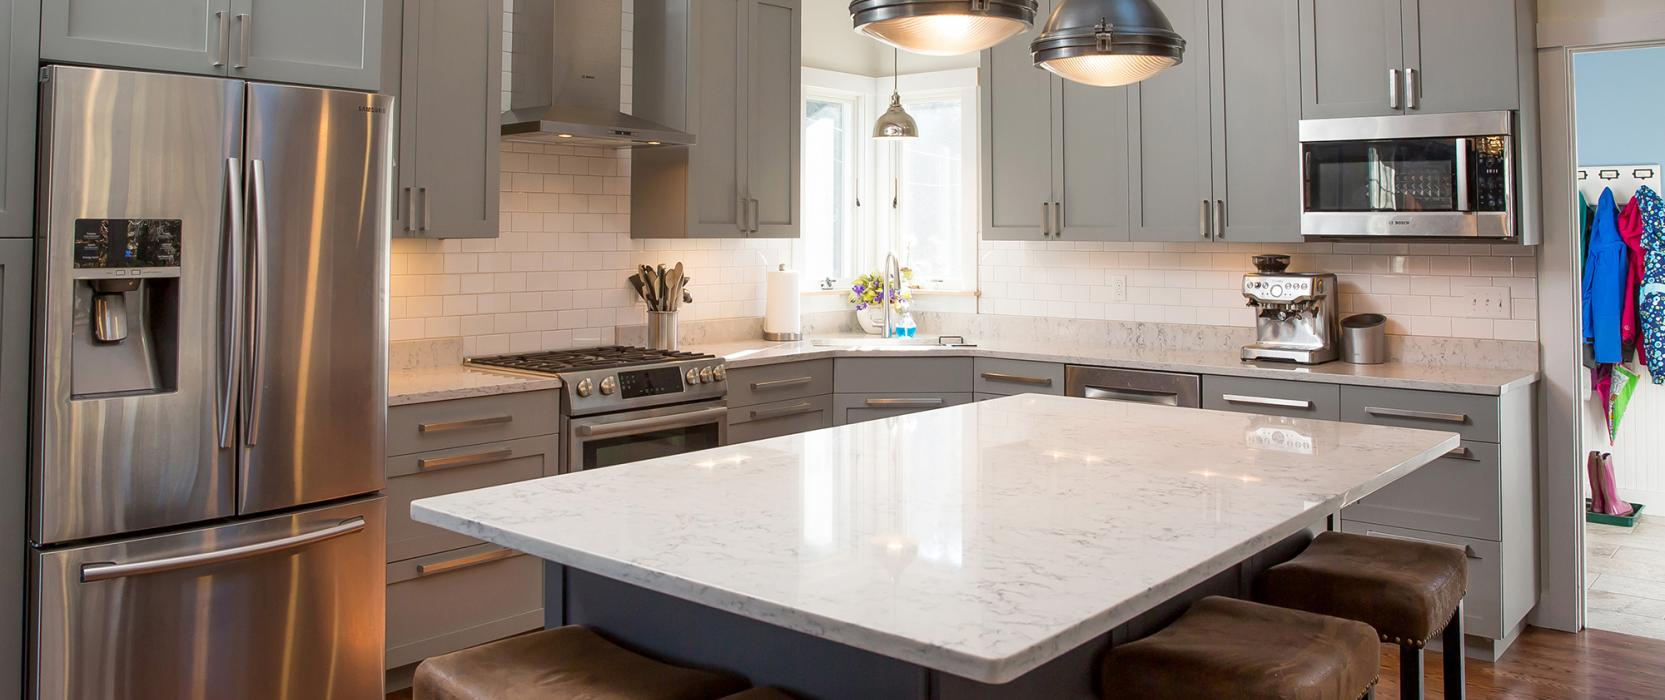 Kitchen island design on Martha's Vineyard